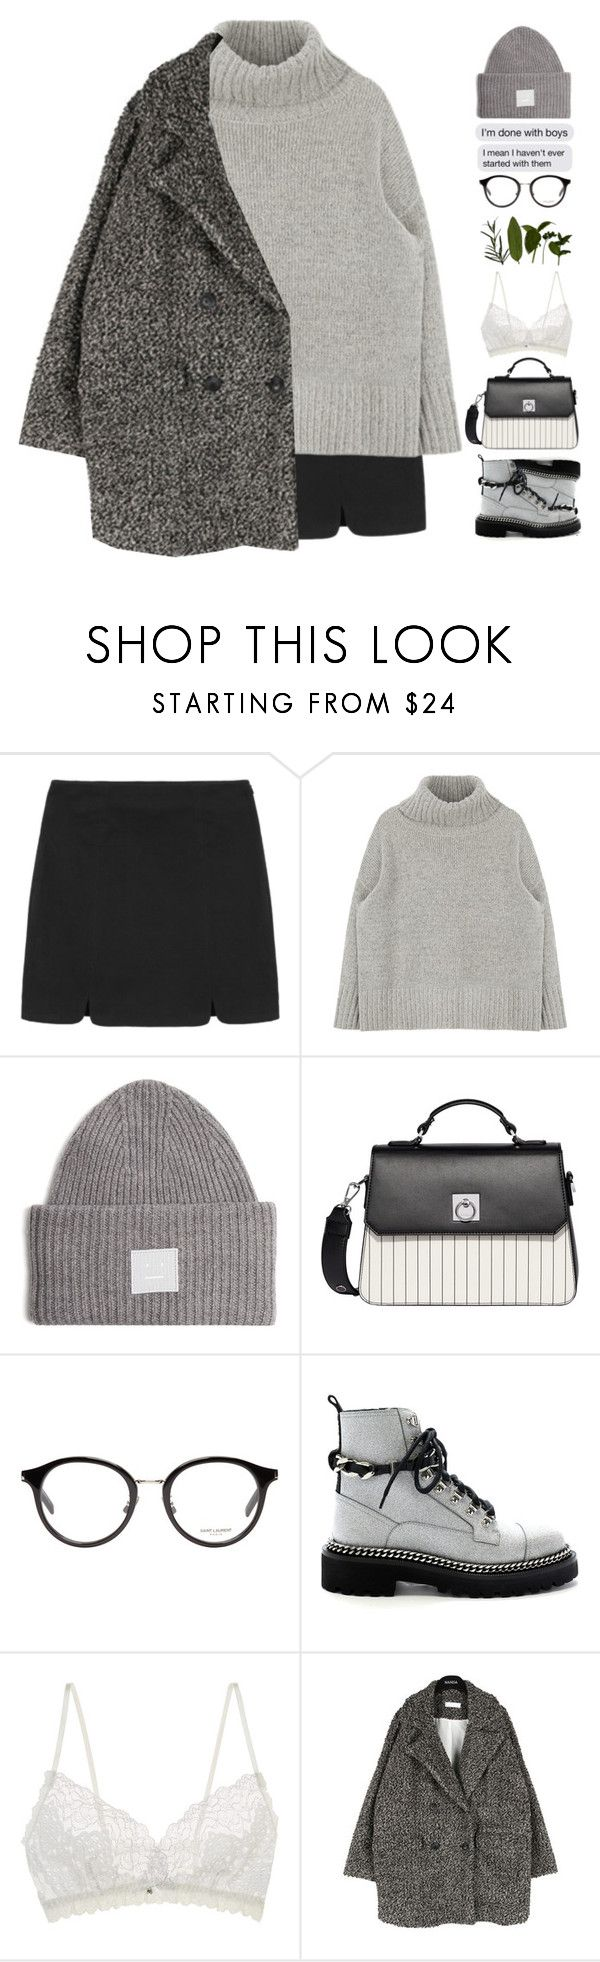 """I'm done with boys"" by heypandagirl ❤ liked on Polyvore featuring Acne Studios, Fiorelli, Yves Saint Laurent and Hanky Panky"